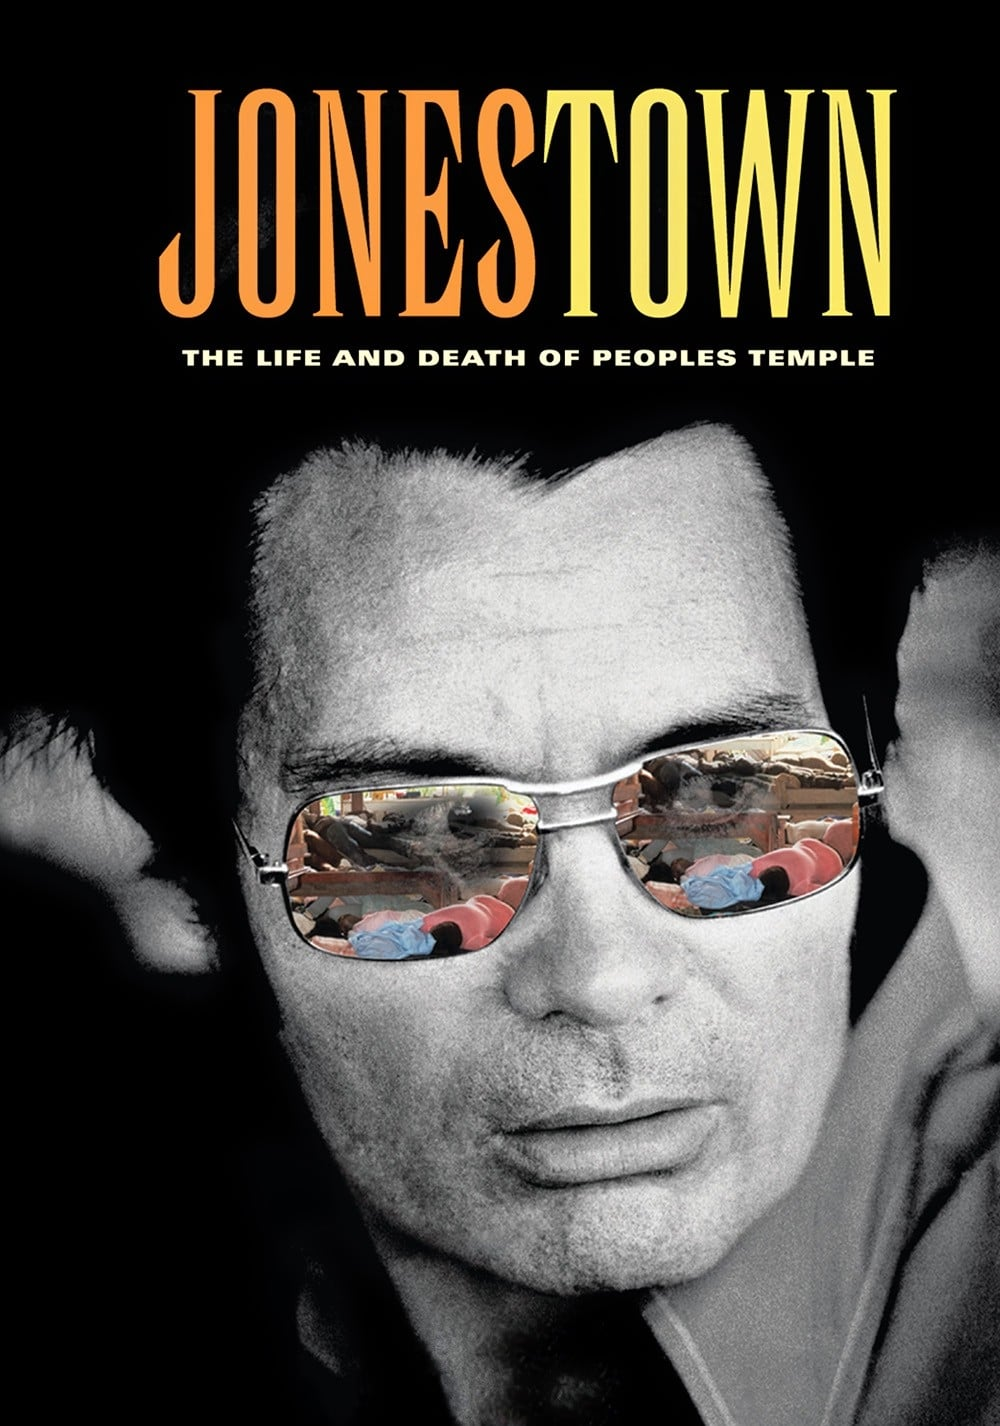 watch Jonestown: The Life and Death of Peoples Temple 2006 online free